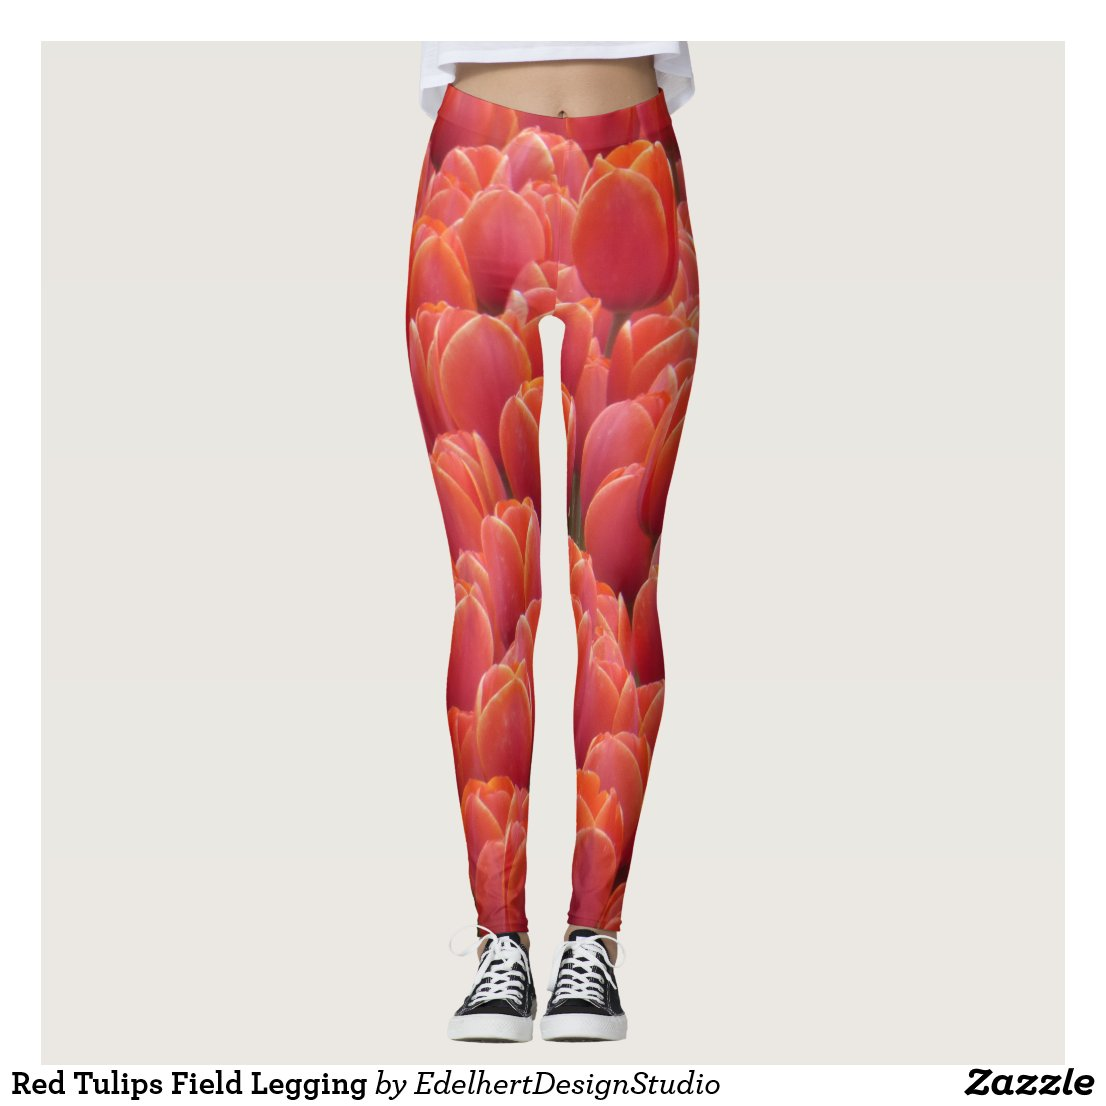 Red Tulips Field Legging